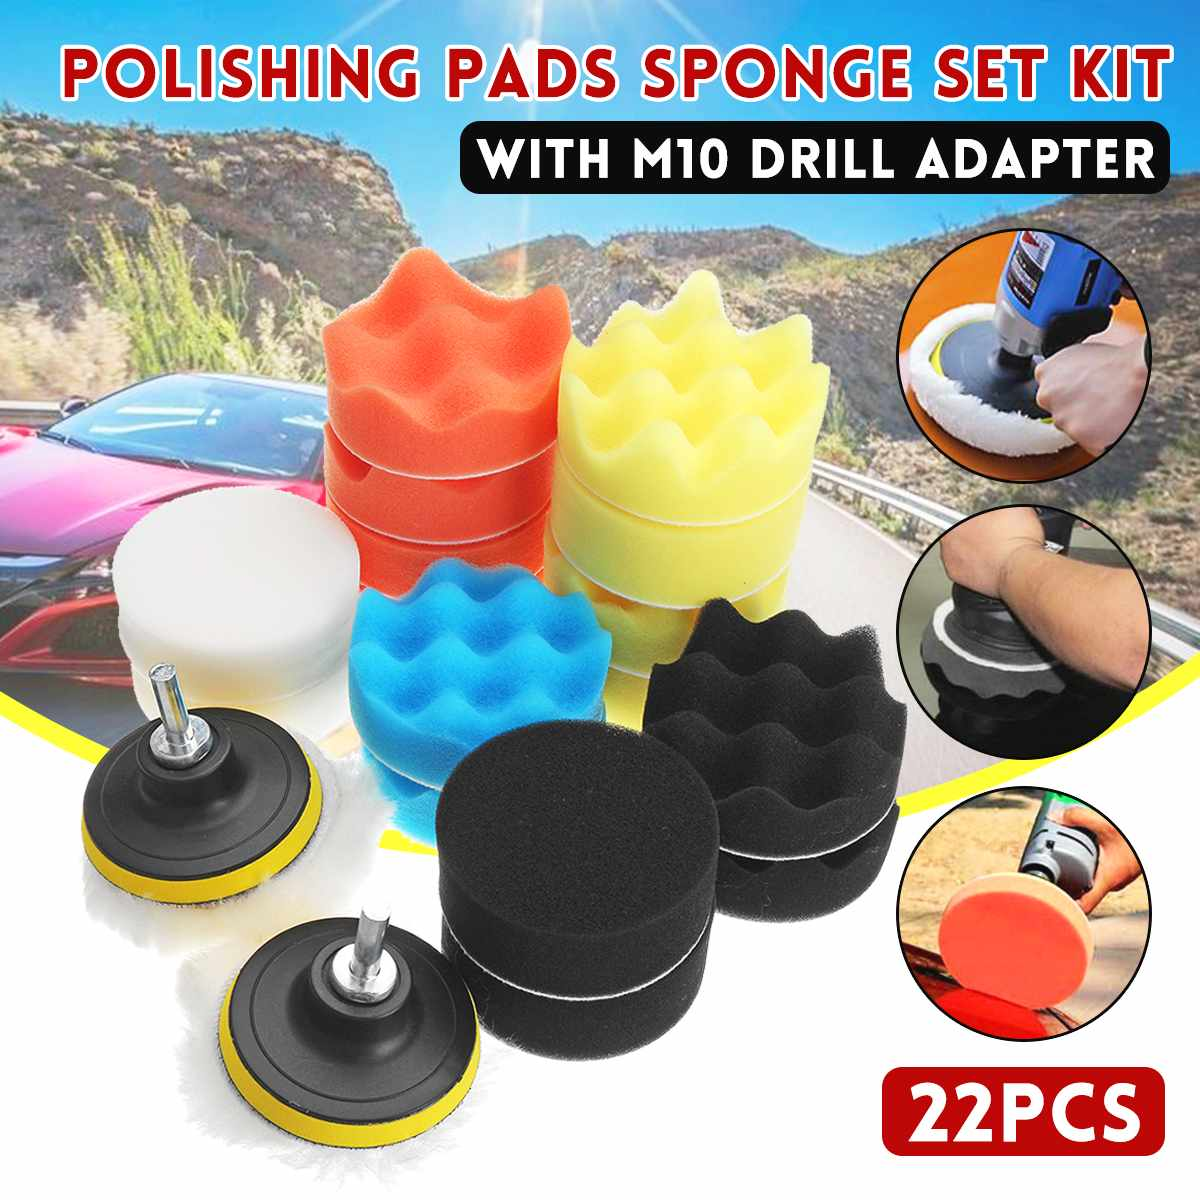 22PCS Buffing Sponge Polishing Pad Hand Tool Kit With M10 Drill Adapter For Car Polisher Wax